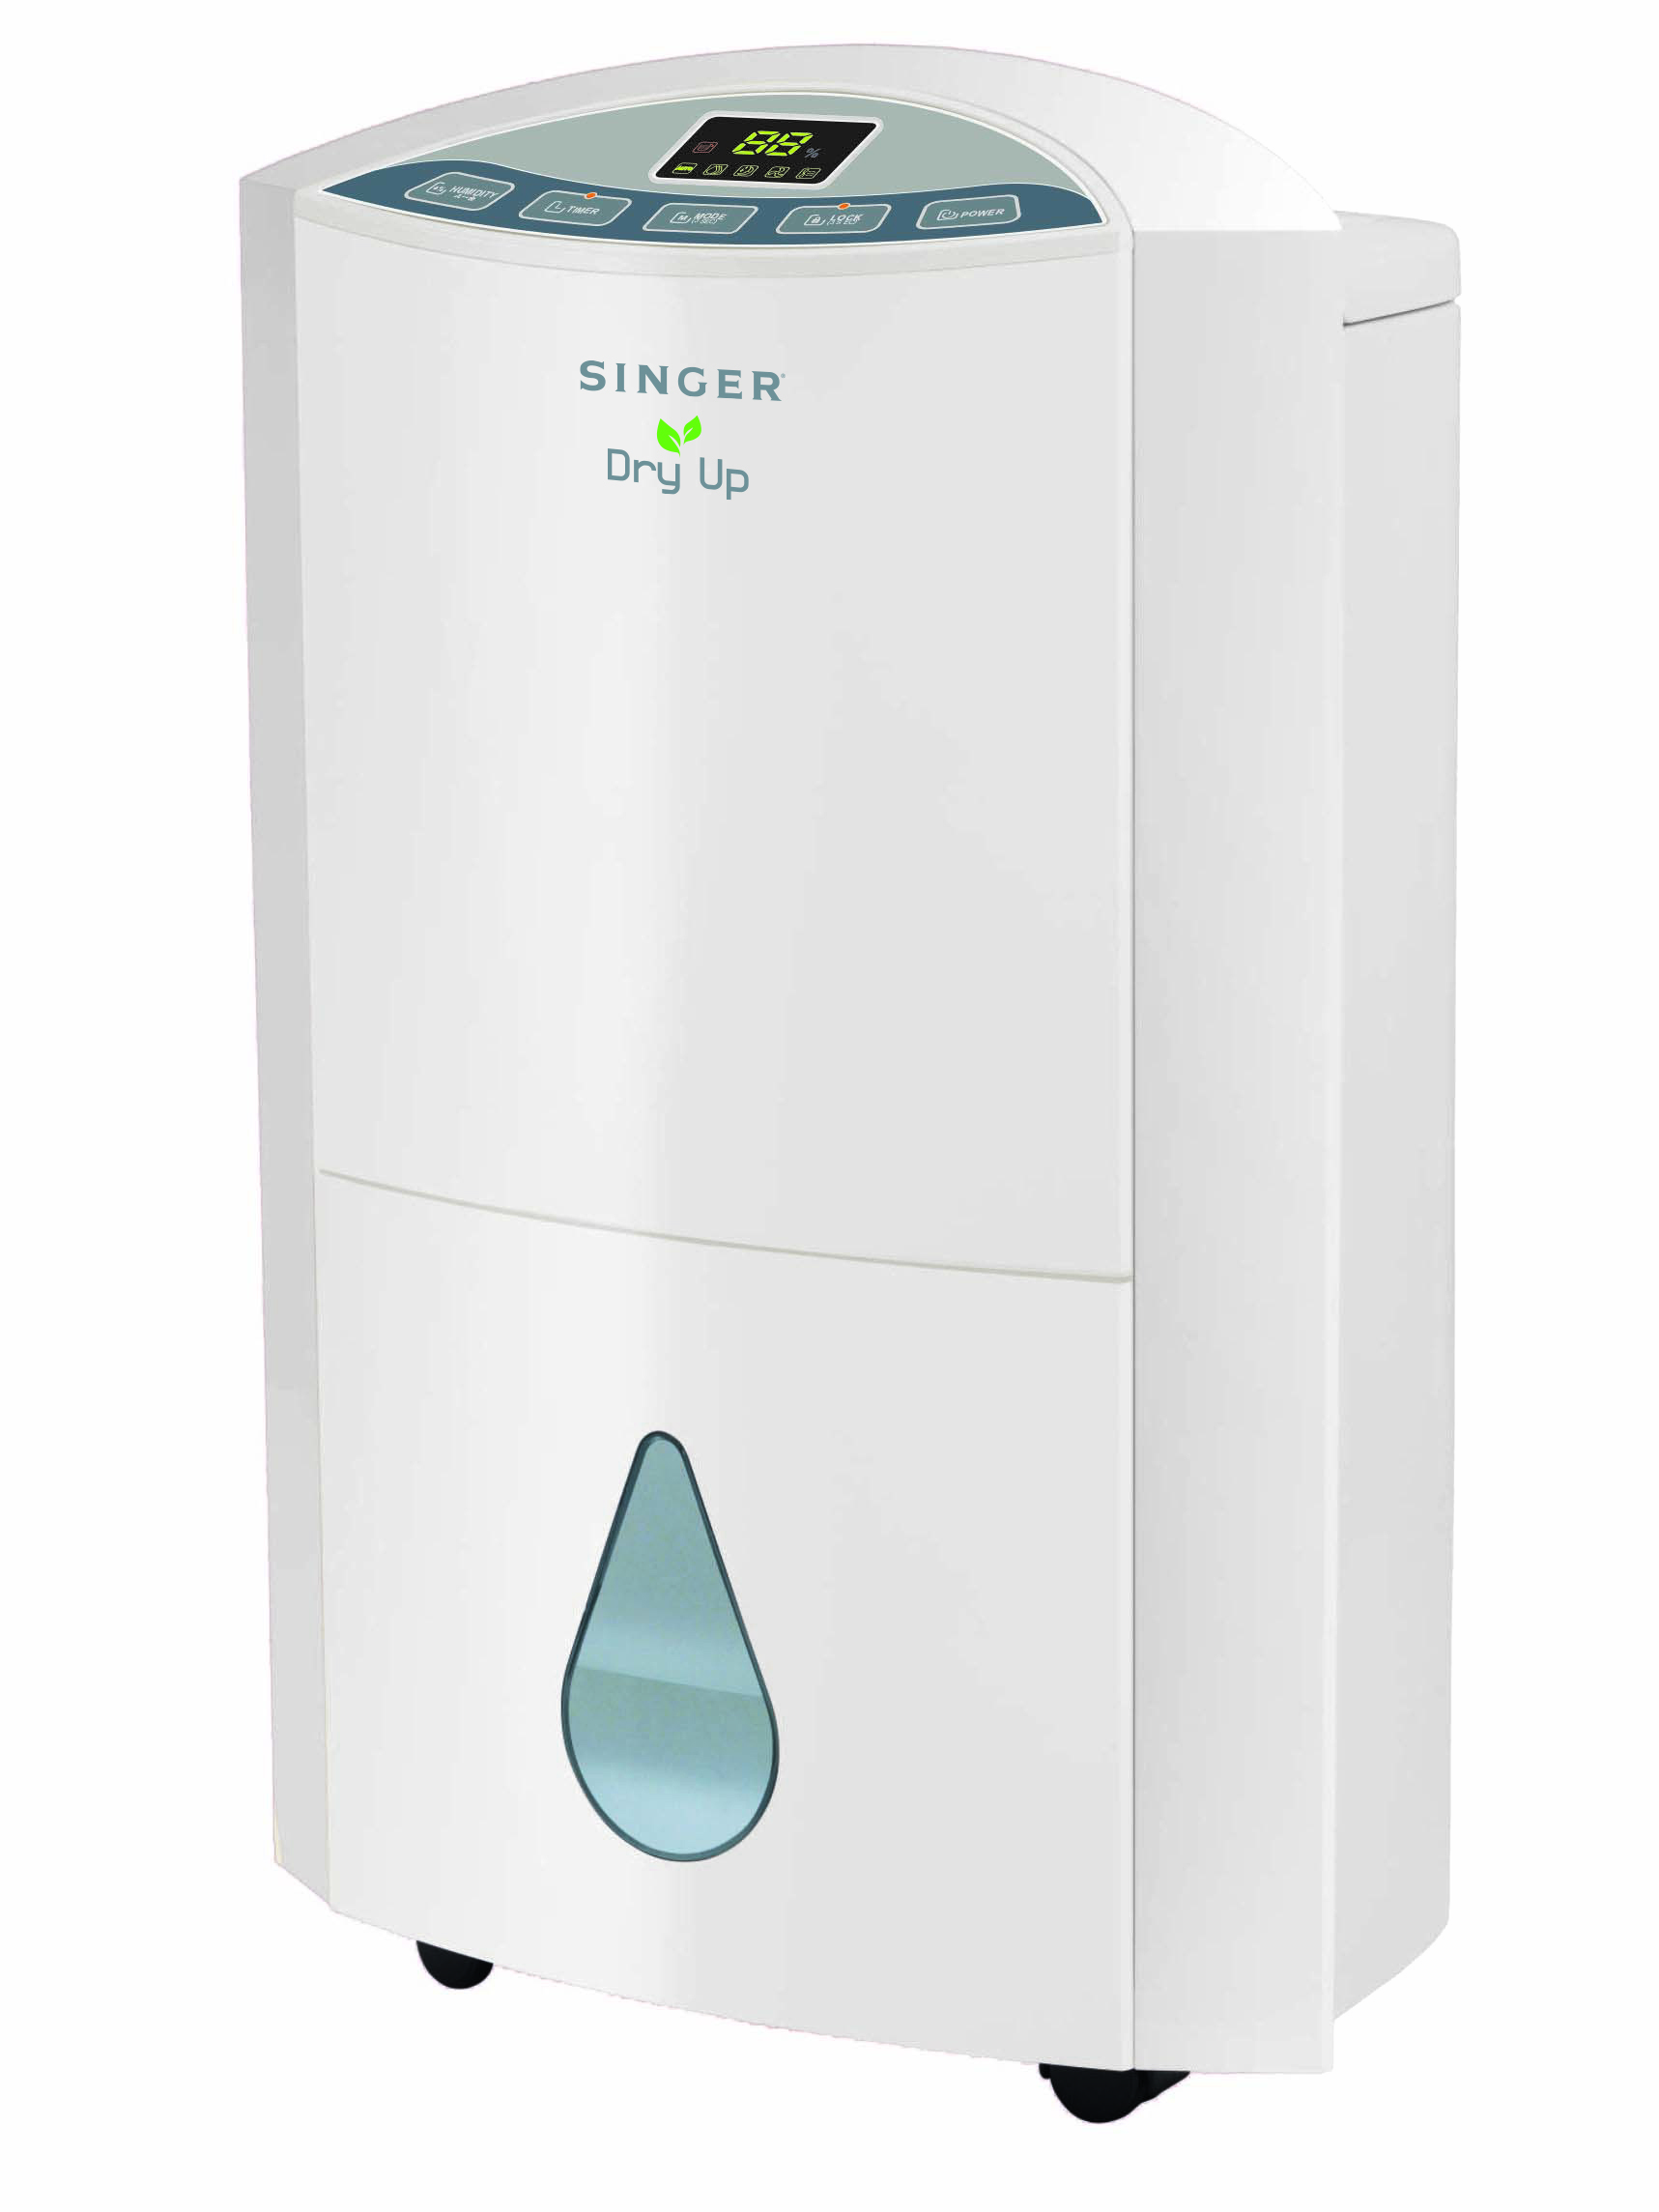 SINGER SDHM-20L DRY UP ECO